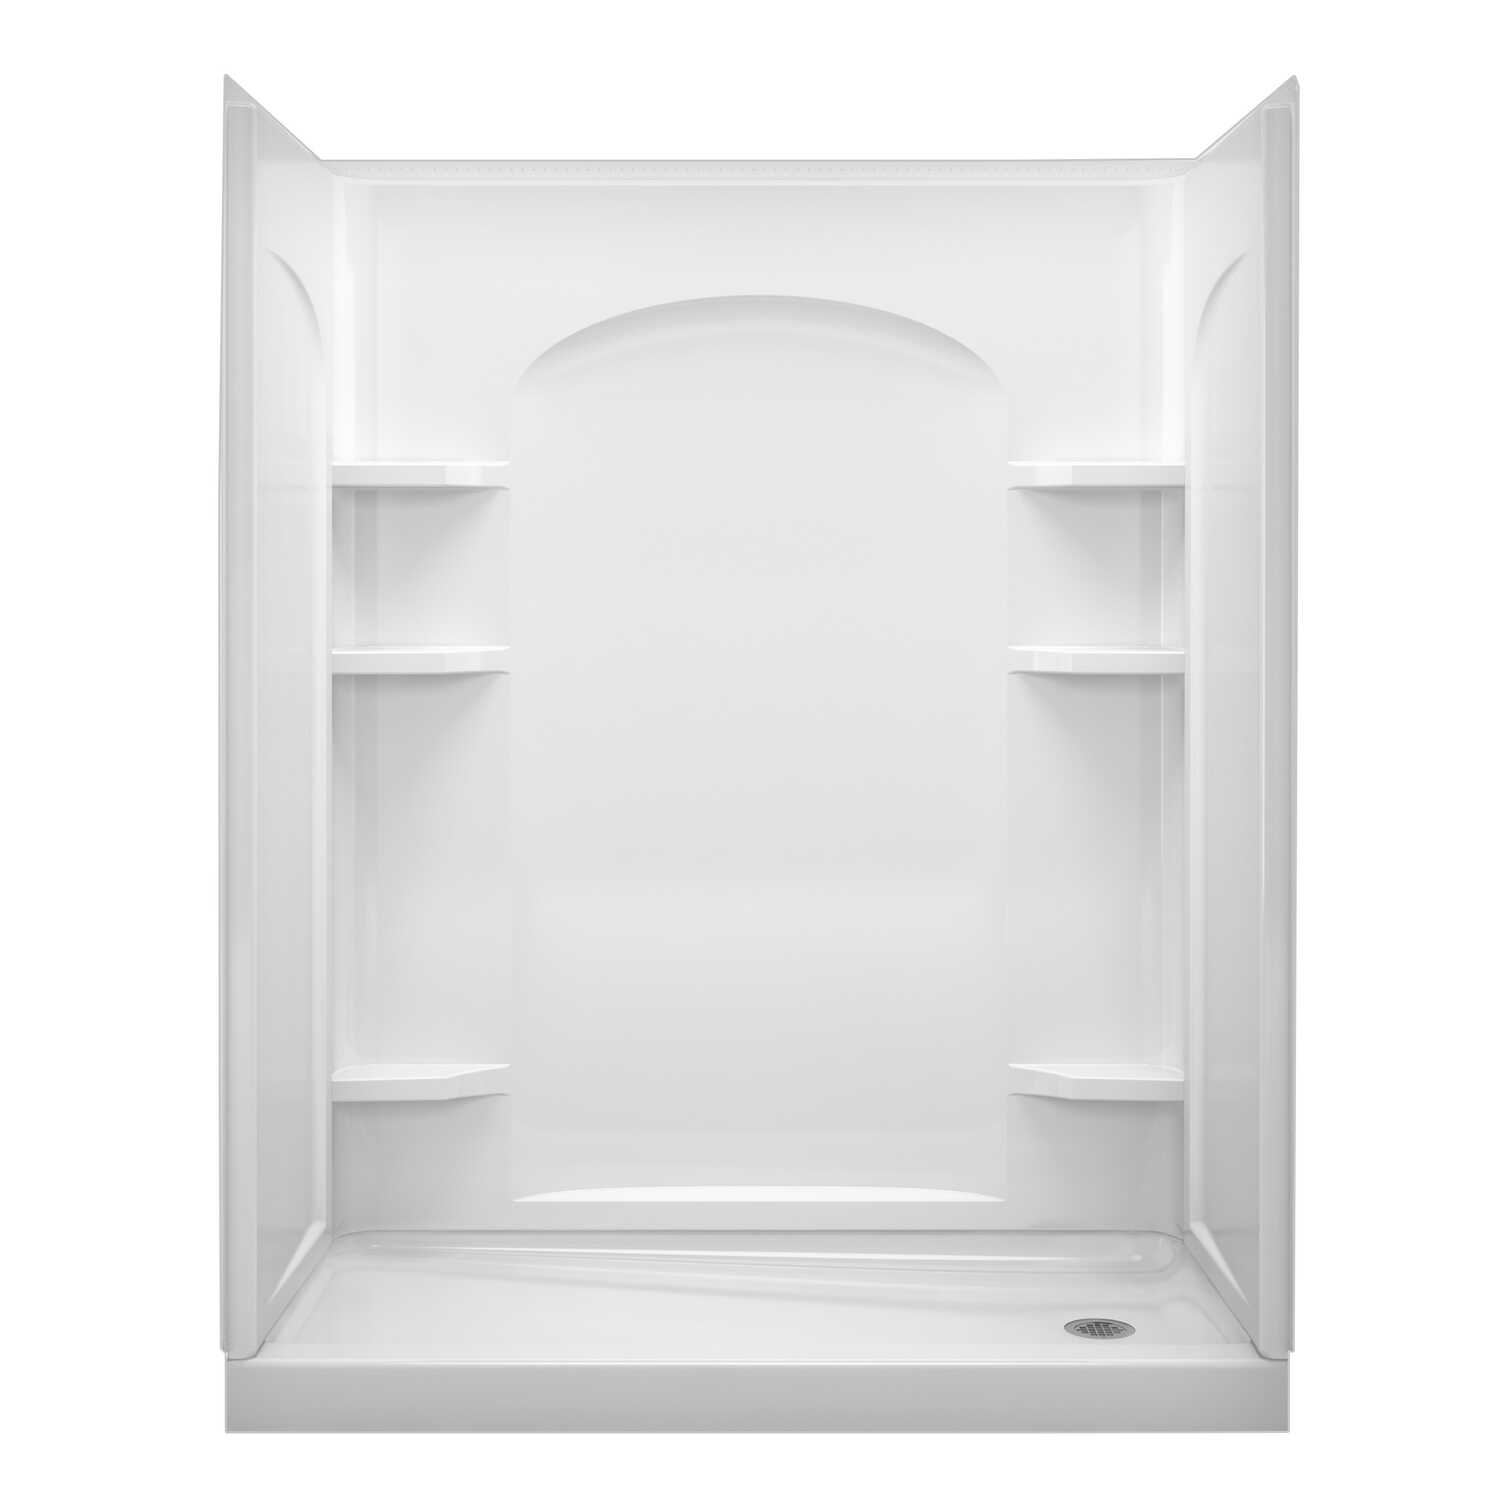 Sterling  Ensemble  4 in. H x 30 in. W x 60 in. L White  Shower Base  Plastic composite  Right Hand